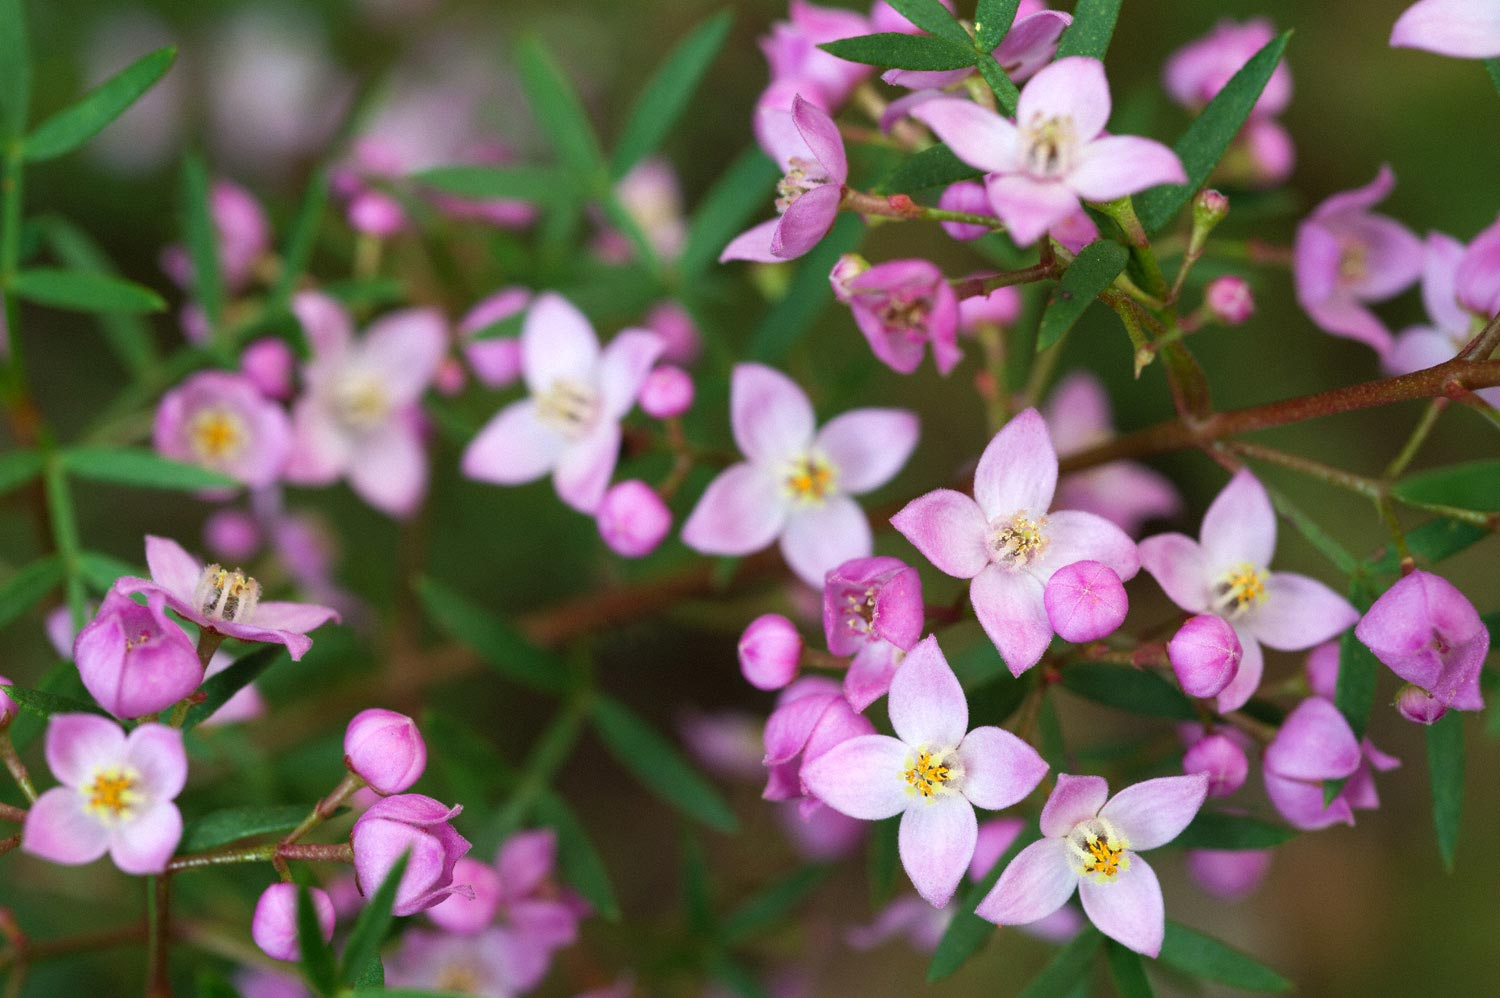 Warren-Hinder-LR-purple.Flowers.Wentworth.Falls.jpg